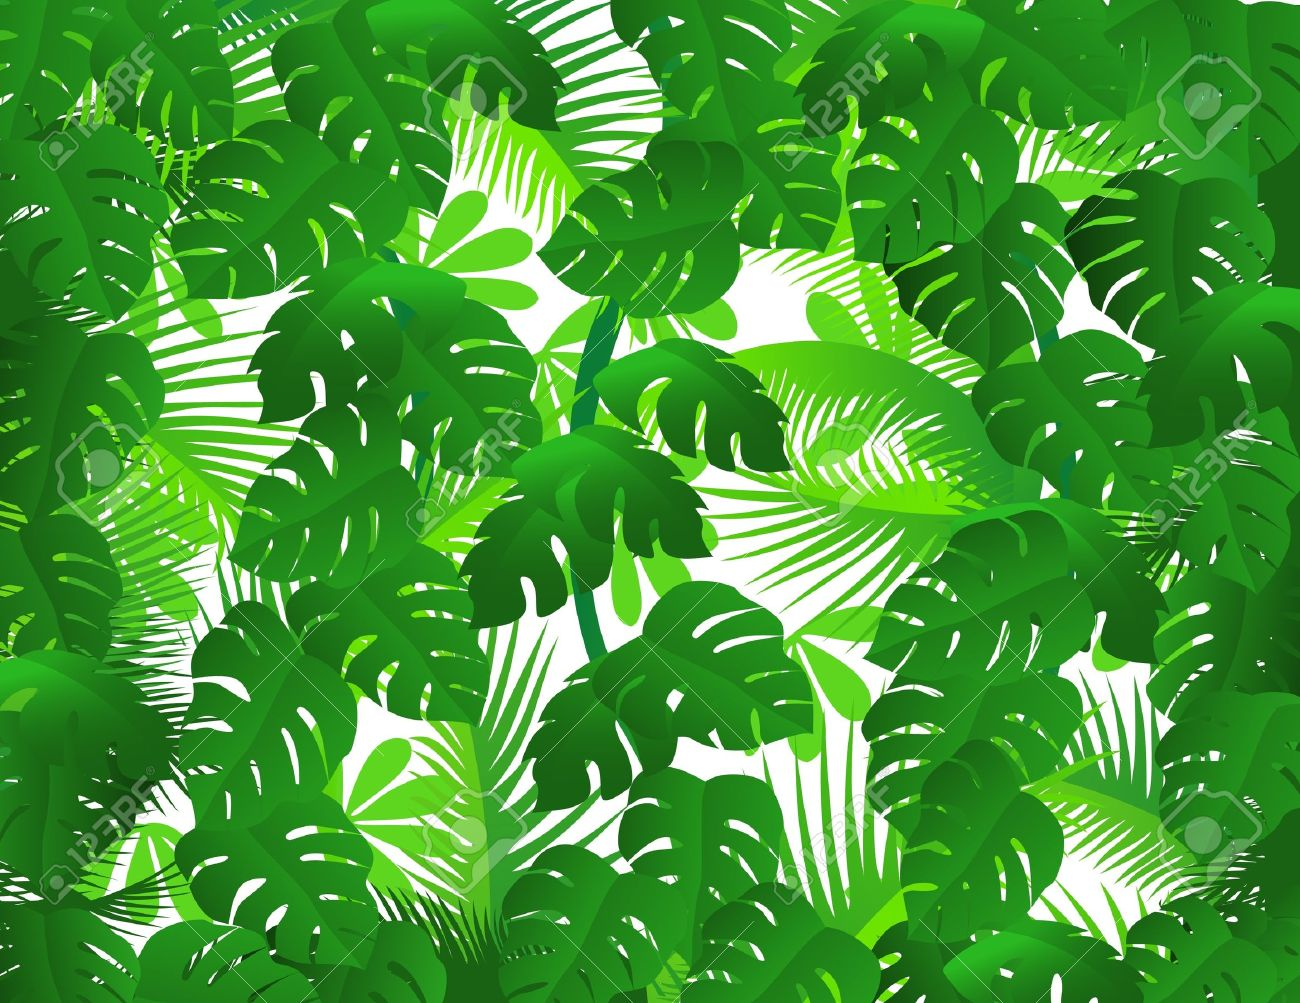 Green forest background - 9569156